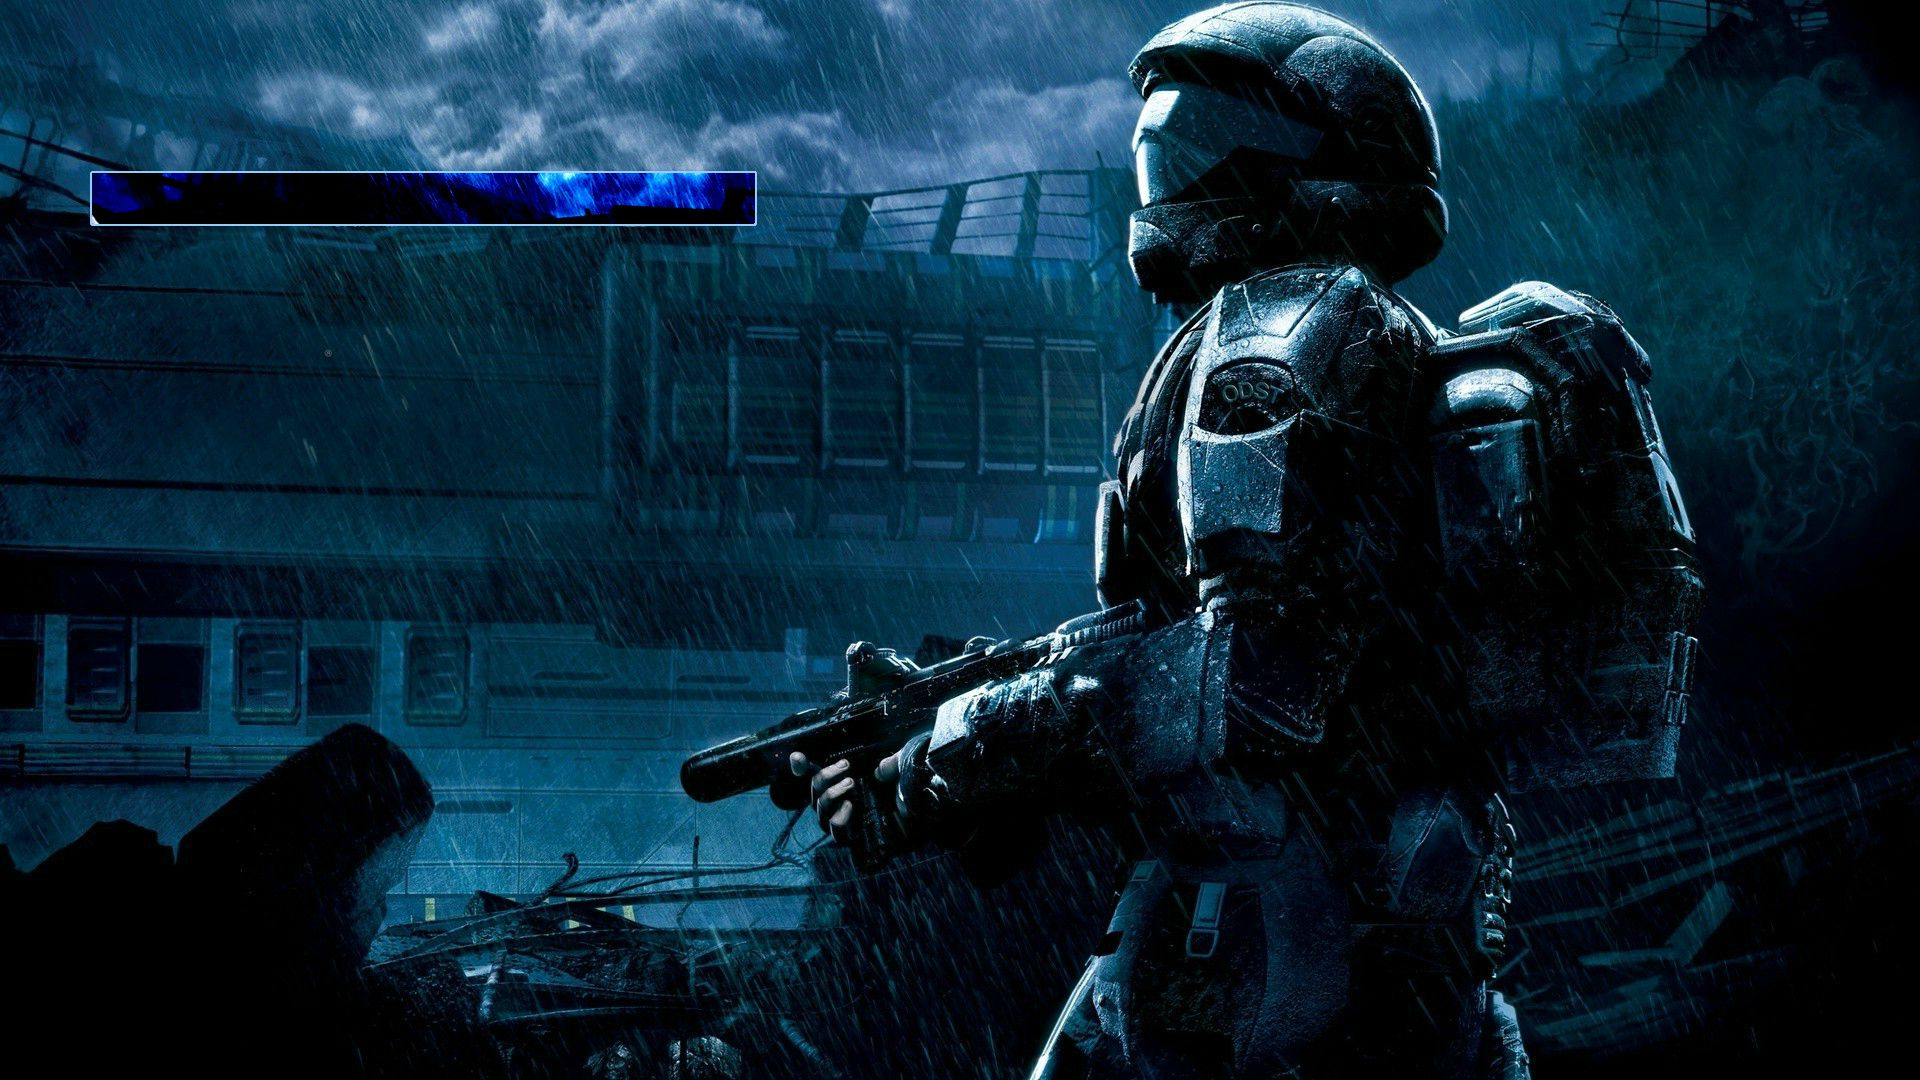 Xbox One Backgrounds 1920x1080